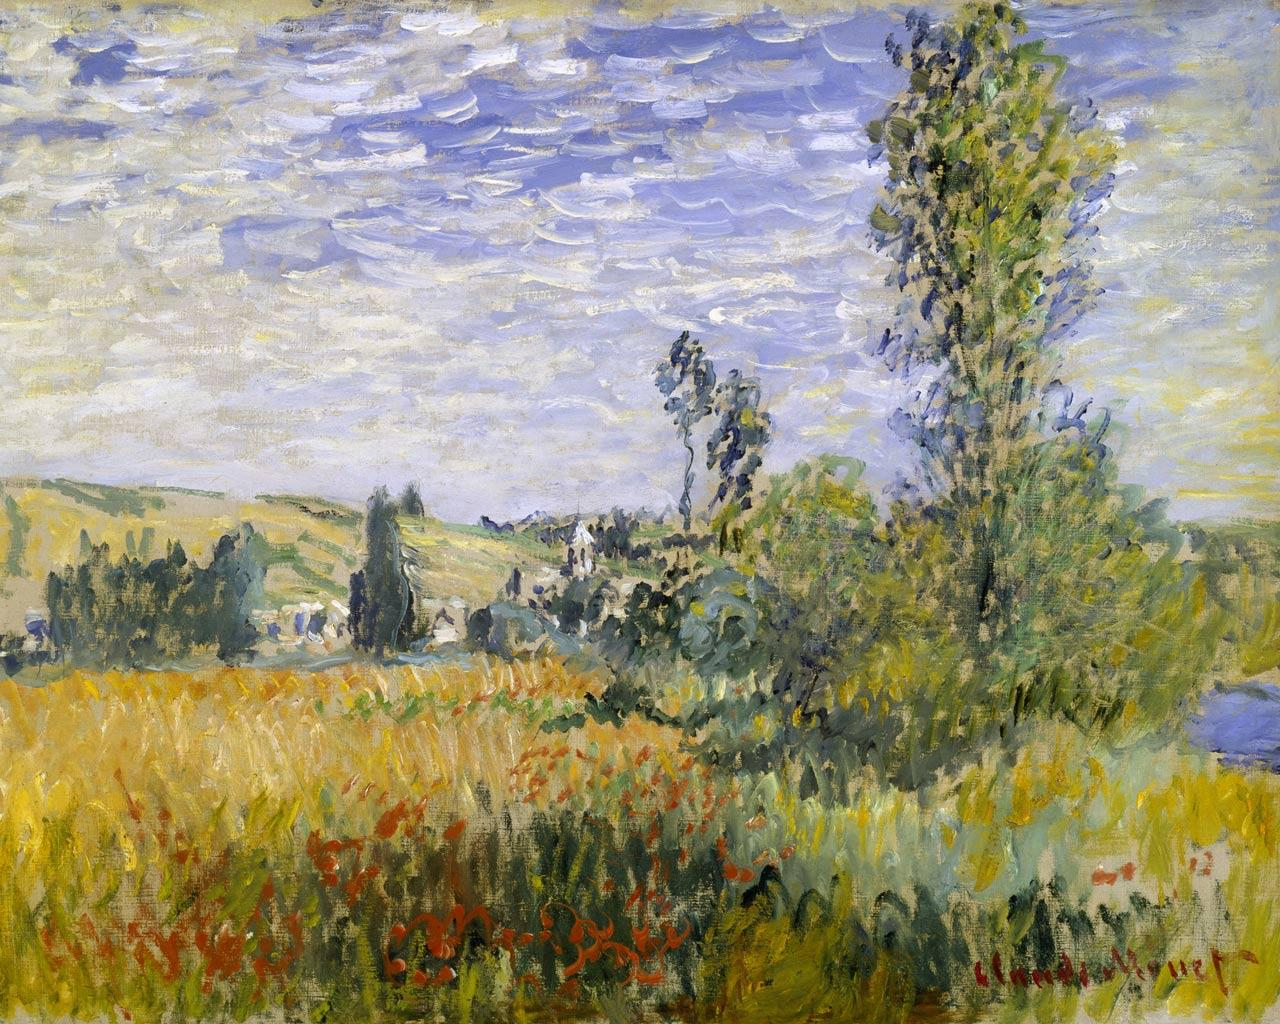 Pinturas De Claude Monet Best Artist Claude Monet Vétheuil 1280x1024 Wallpaper 1